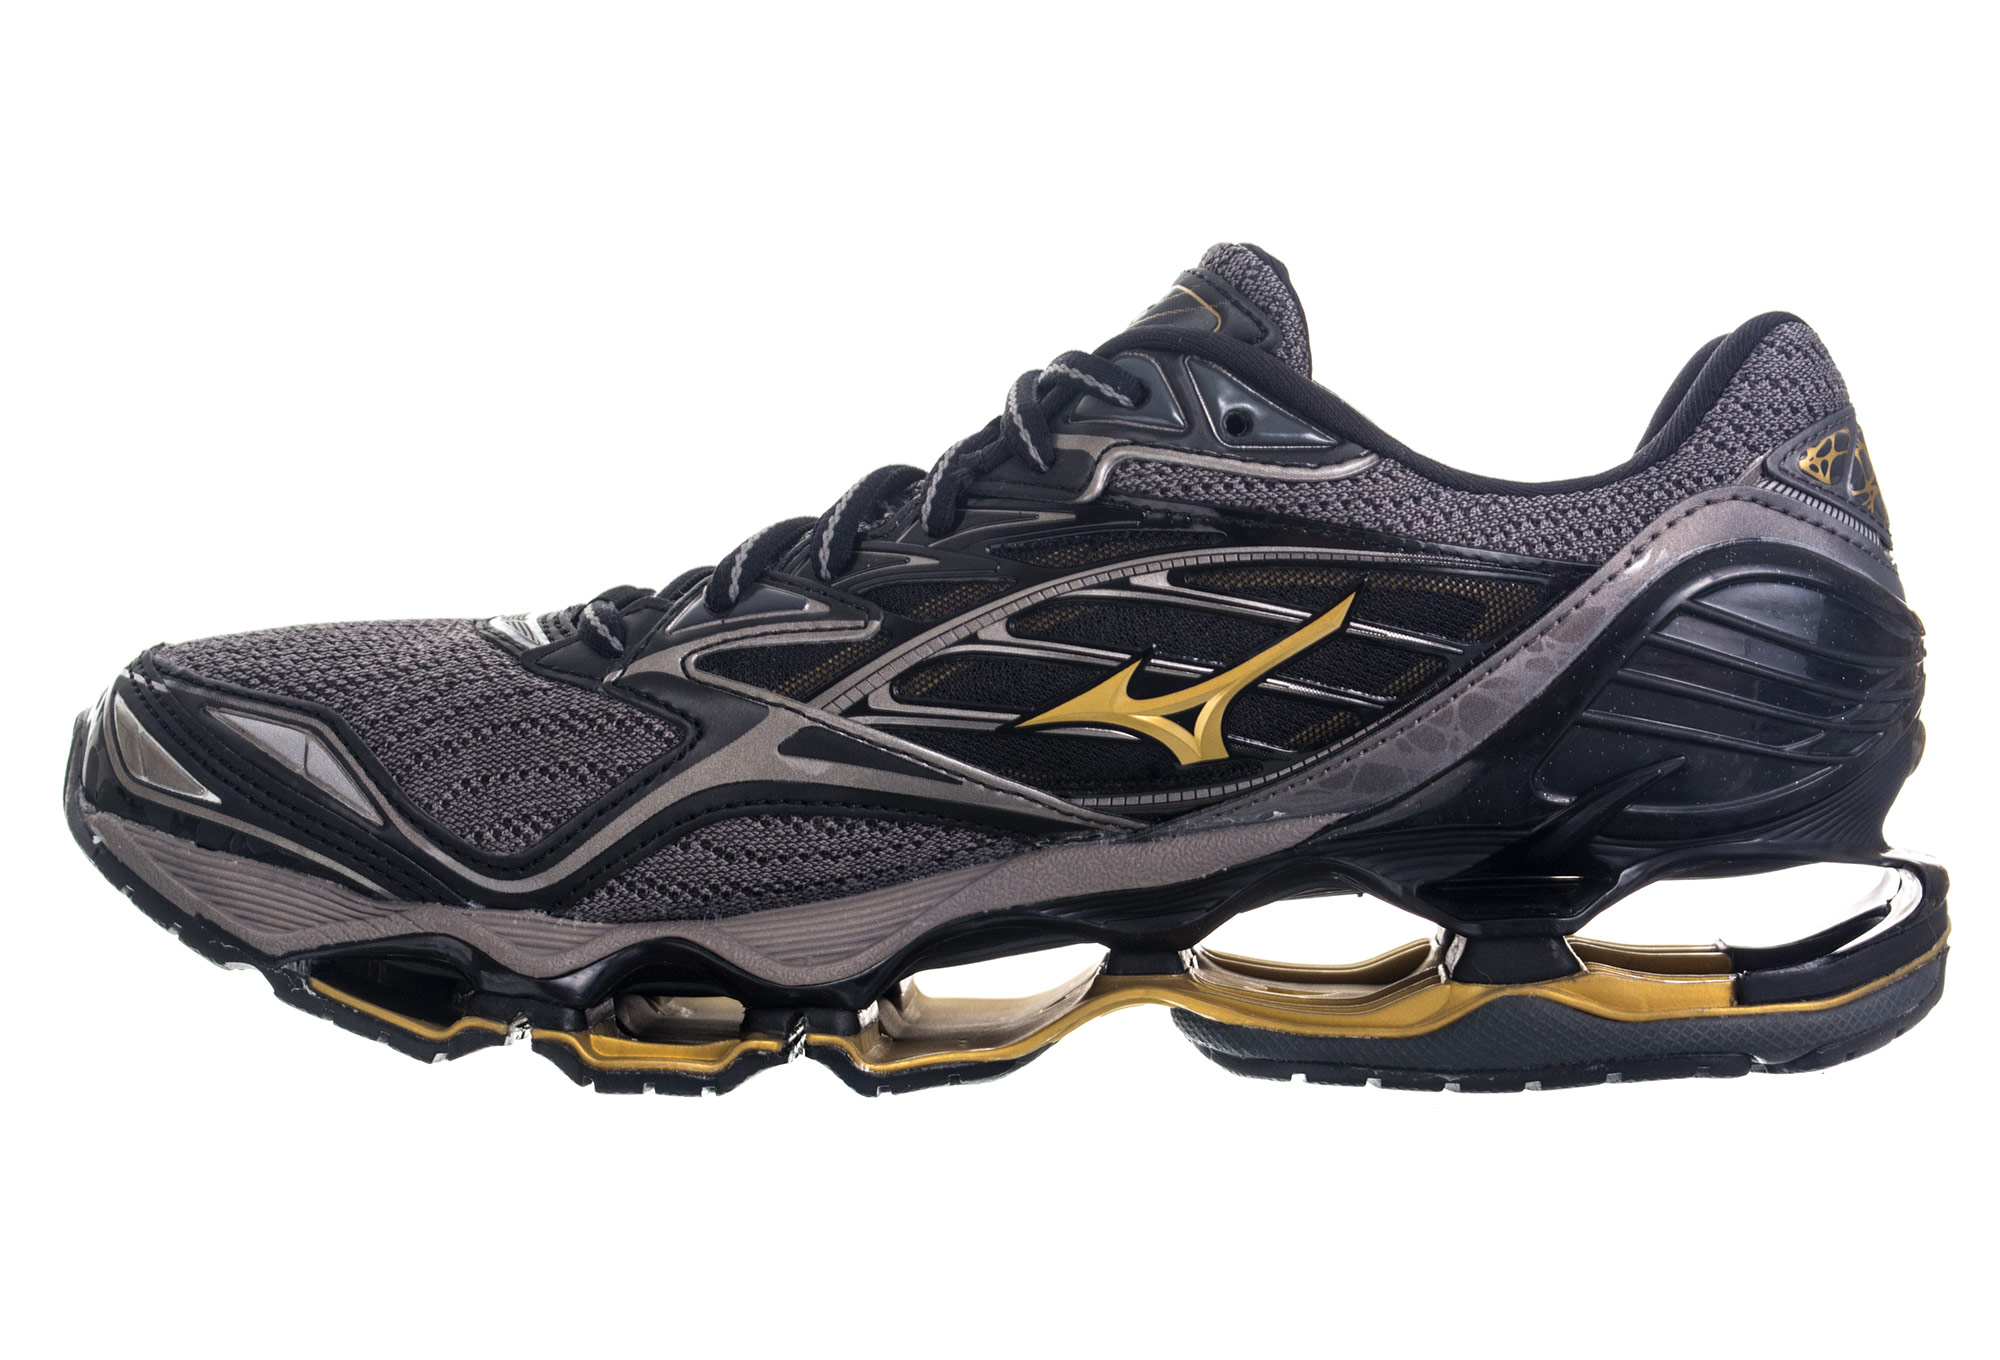 sports shoes 068ca 7c958 ... Mizuno Wave Prophecy 6 Black Gold ...